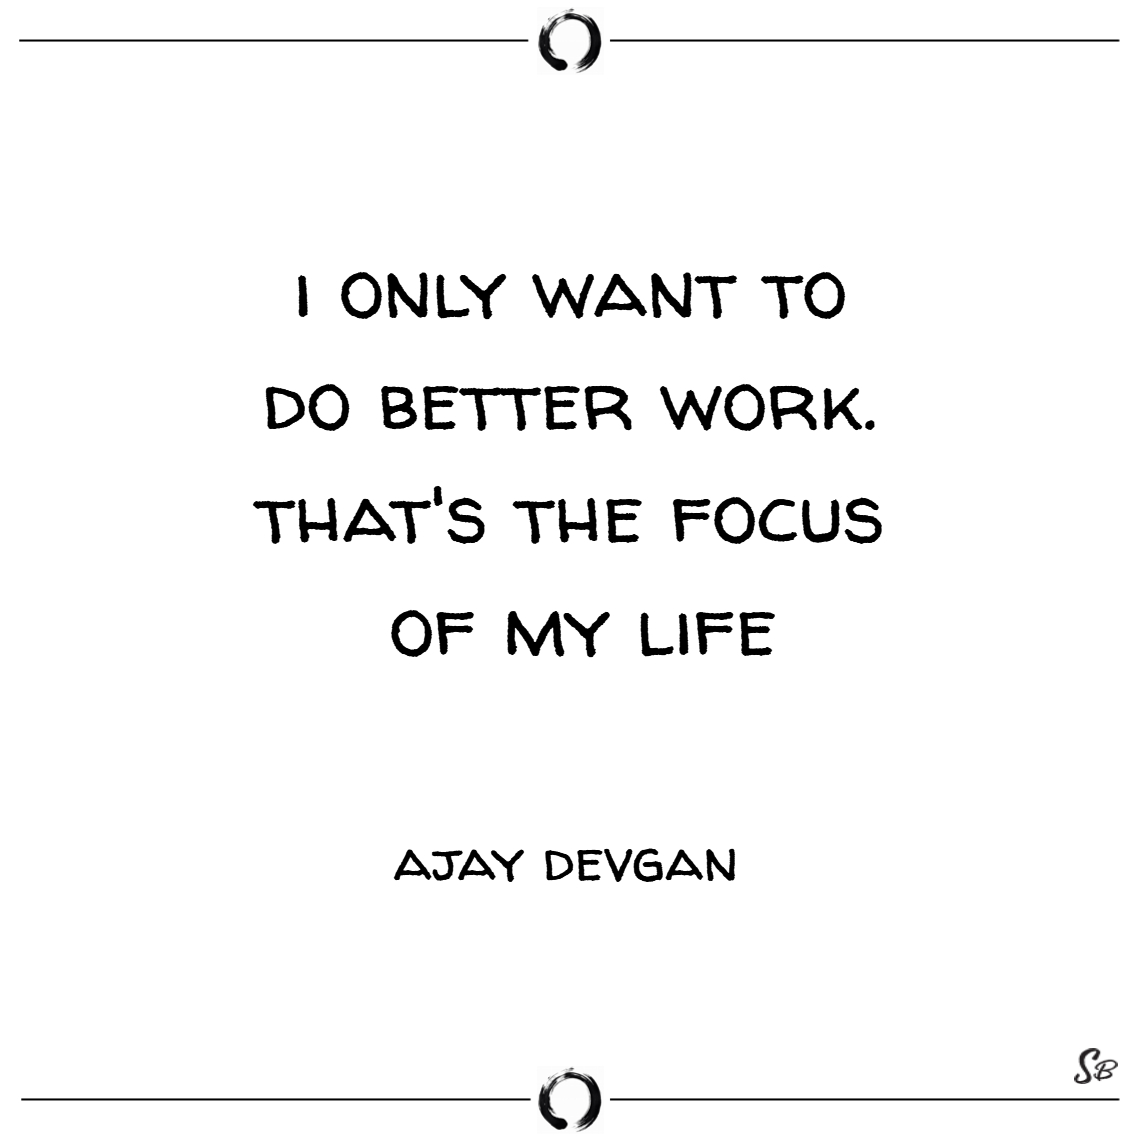 I only want to do better work. that's the focus of